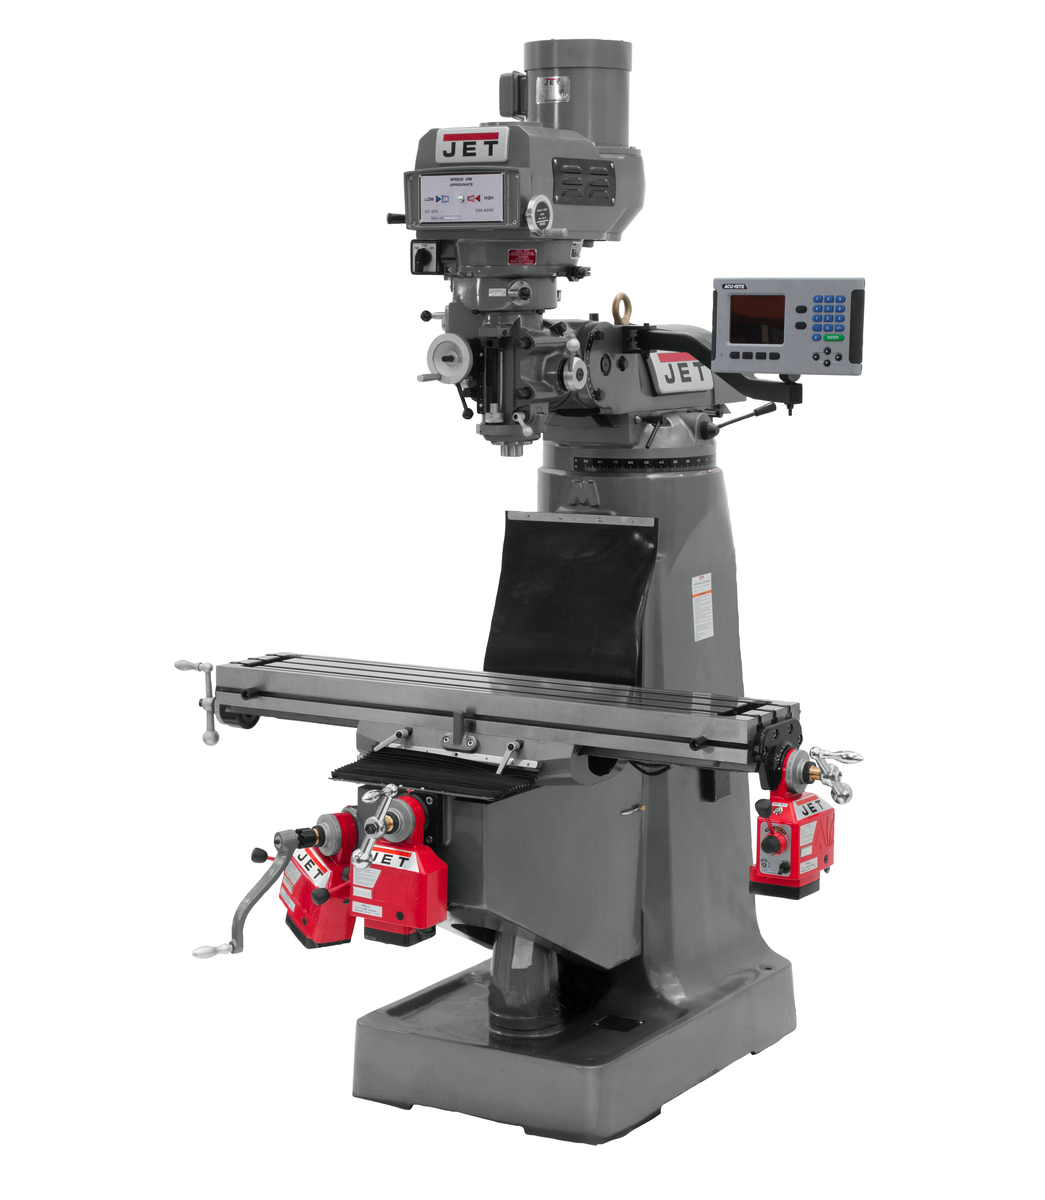 JTM-4VS Mill With ACU-RITE 203 DRO With X, Y and Z-Axis Powerfeeds